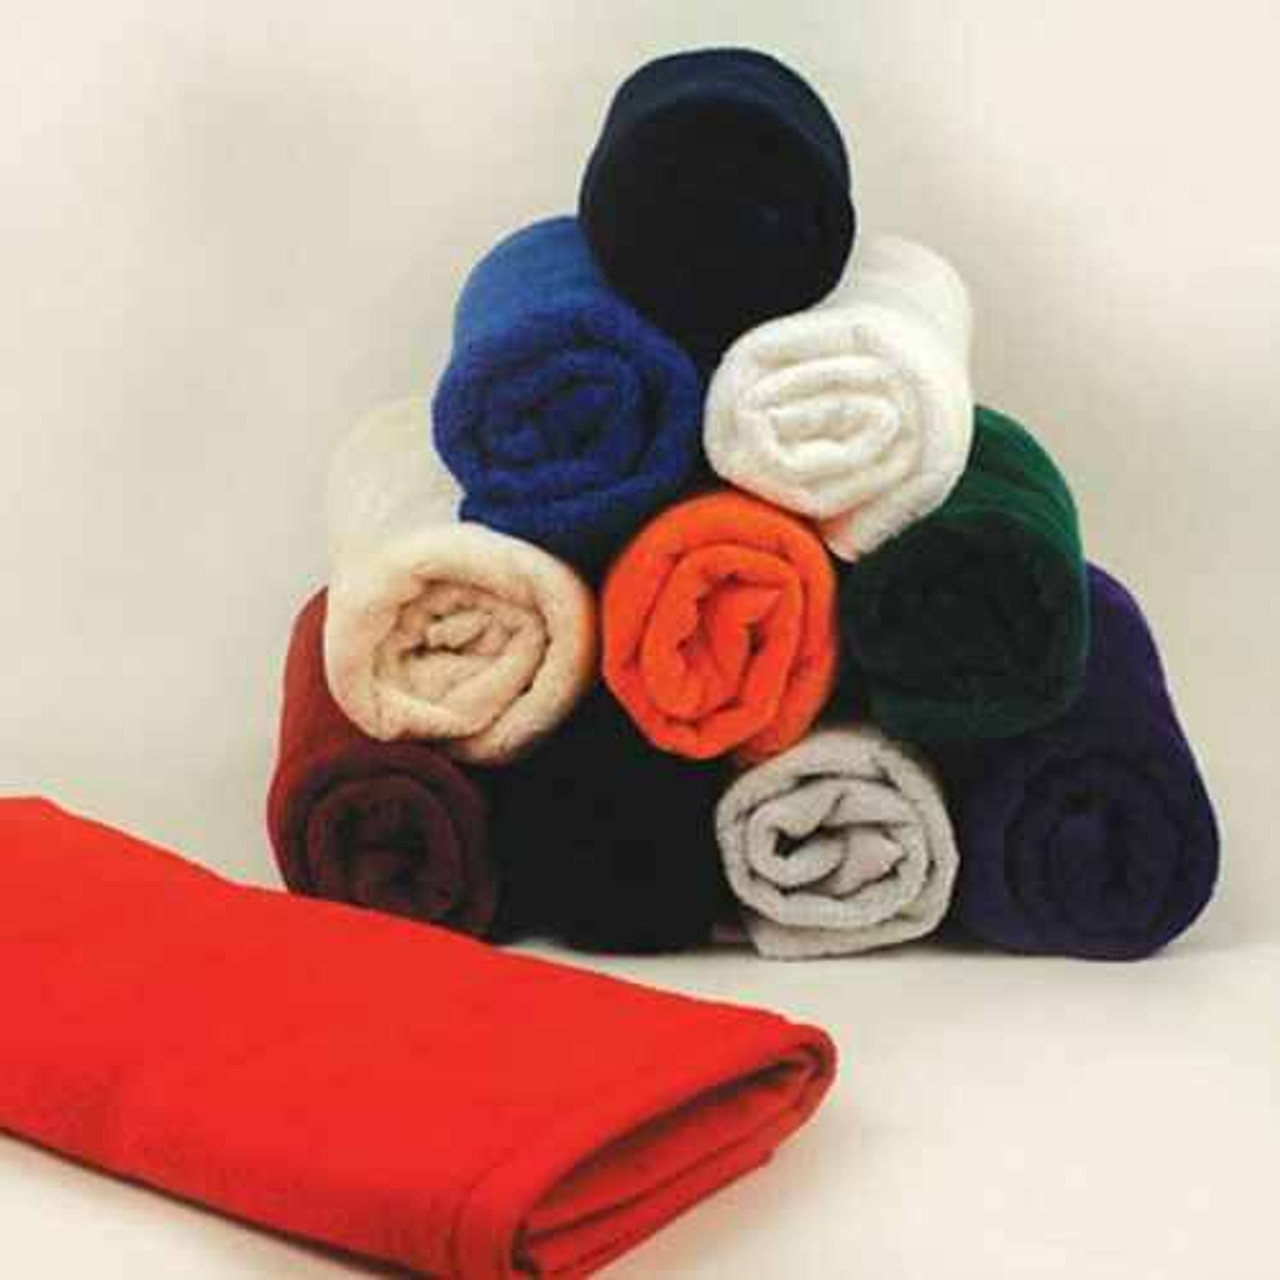 1888 Mills 1888 Millsor Links Velour Golf Towels in Bulk